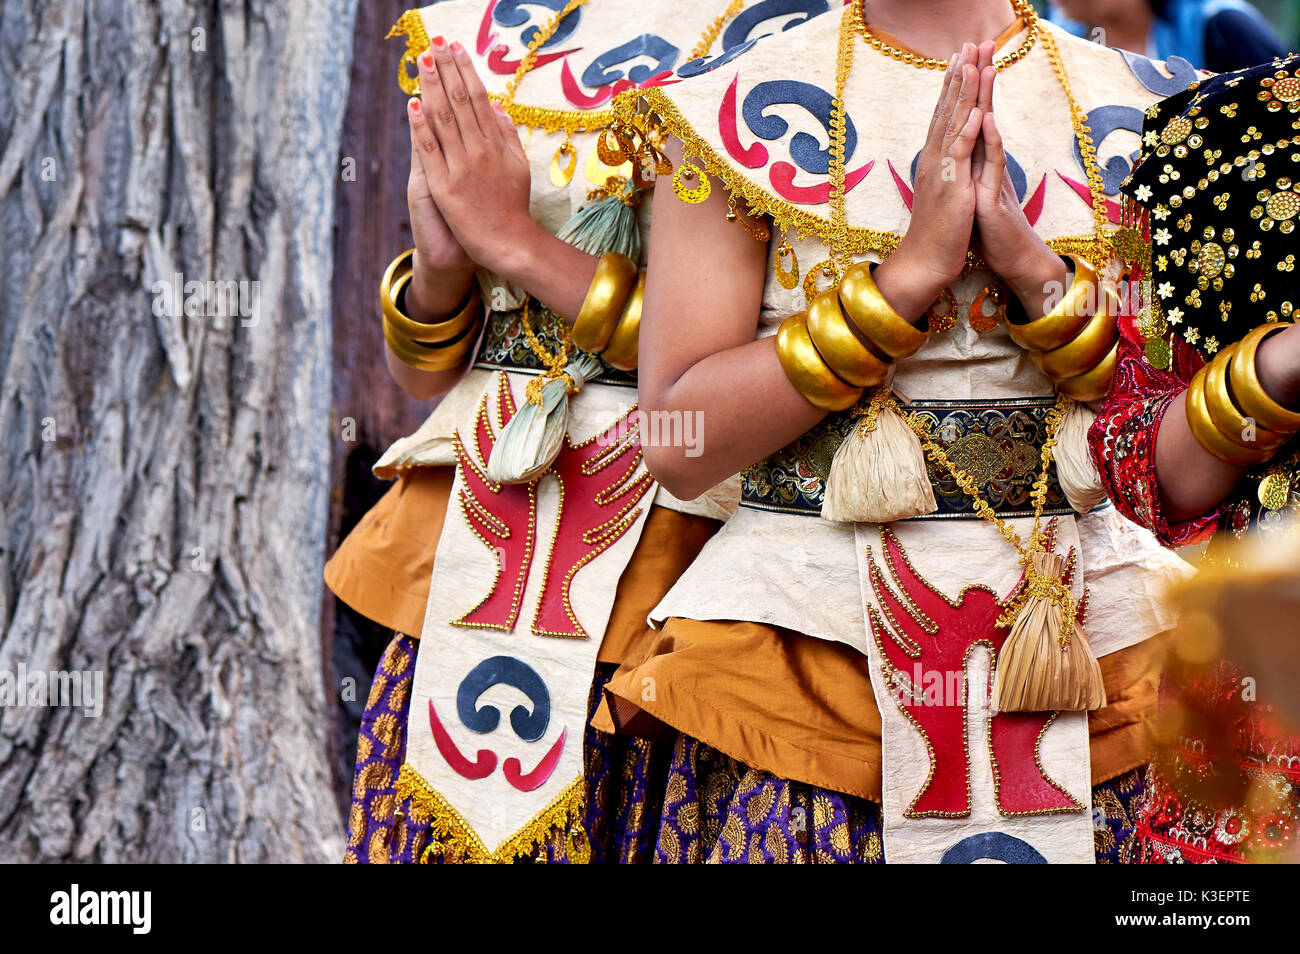 Indonesian national costume,hands in gold bracelets. Bright colors - Stock Image